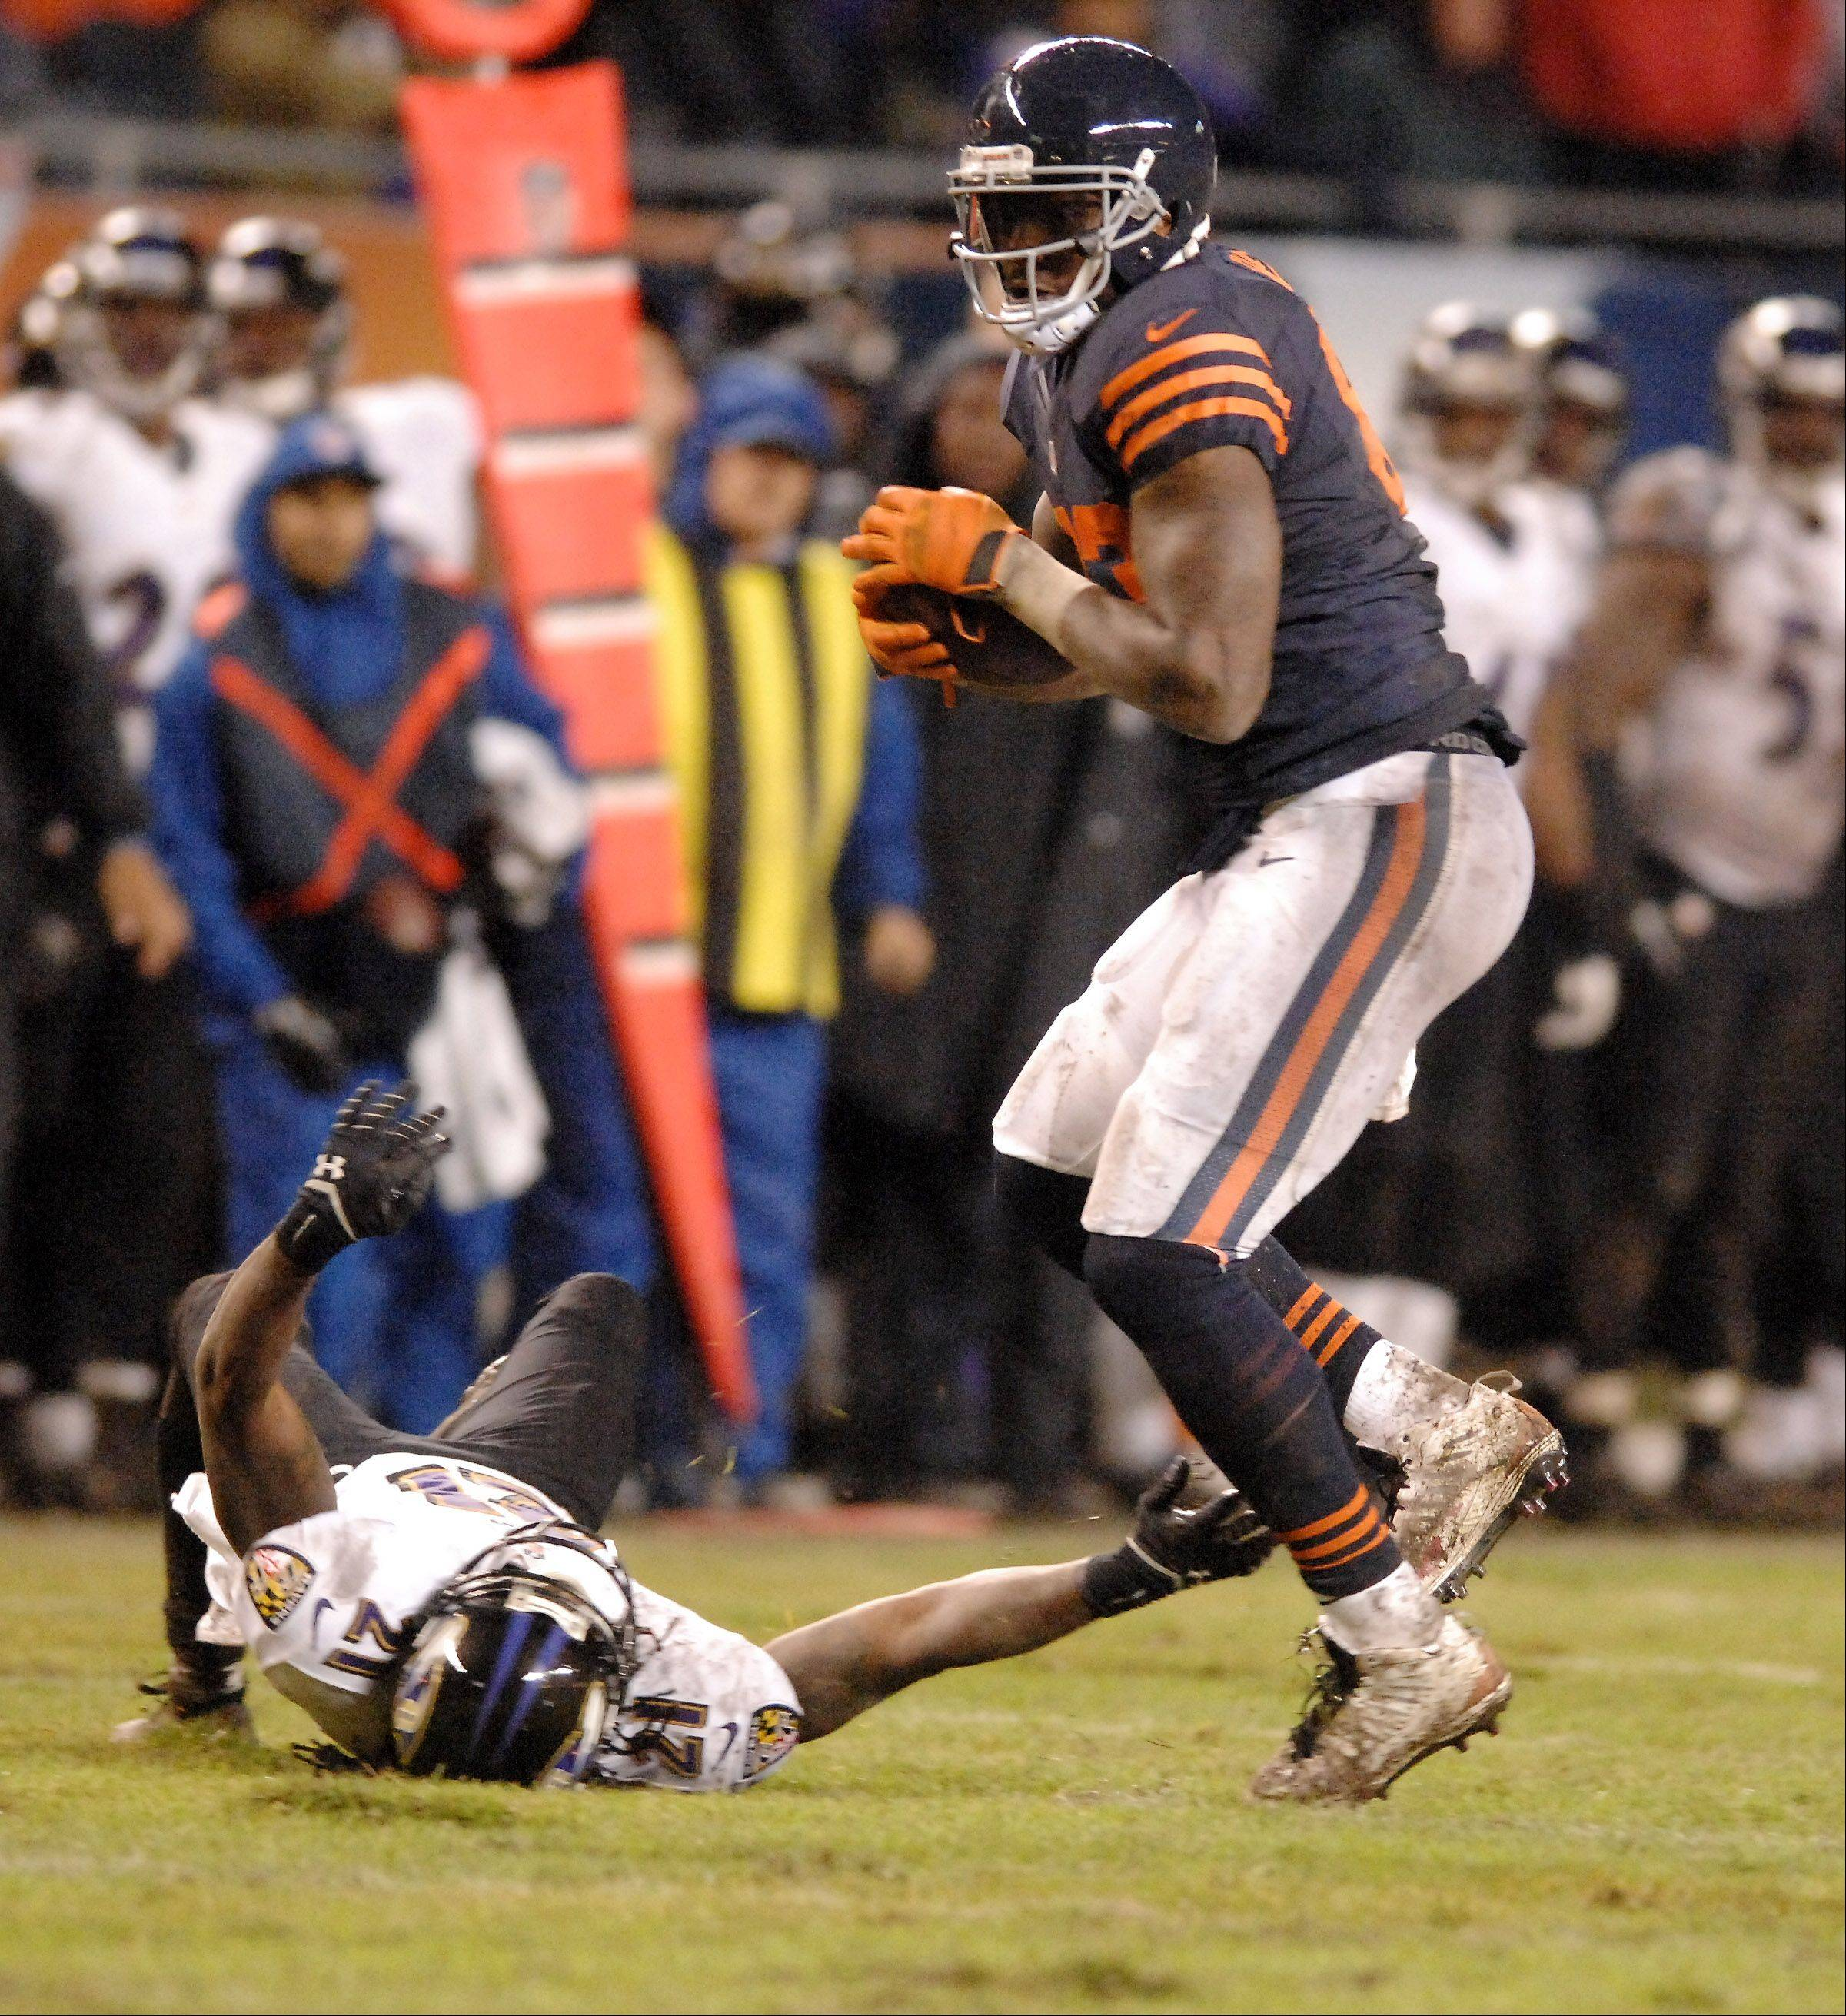 Chicago Bears tight end Martellus Bennett (83) hauls in the catch in overtime that help set up the game-winning field goal during Sunday's game in Chicago.